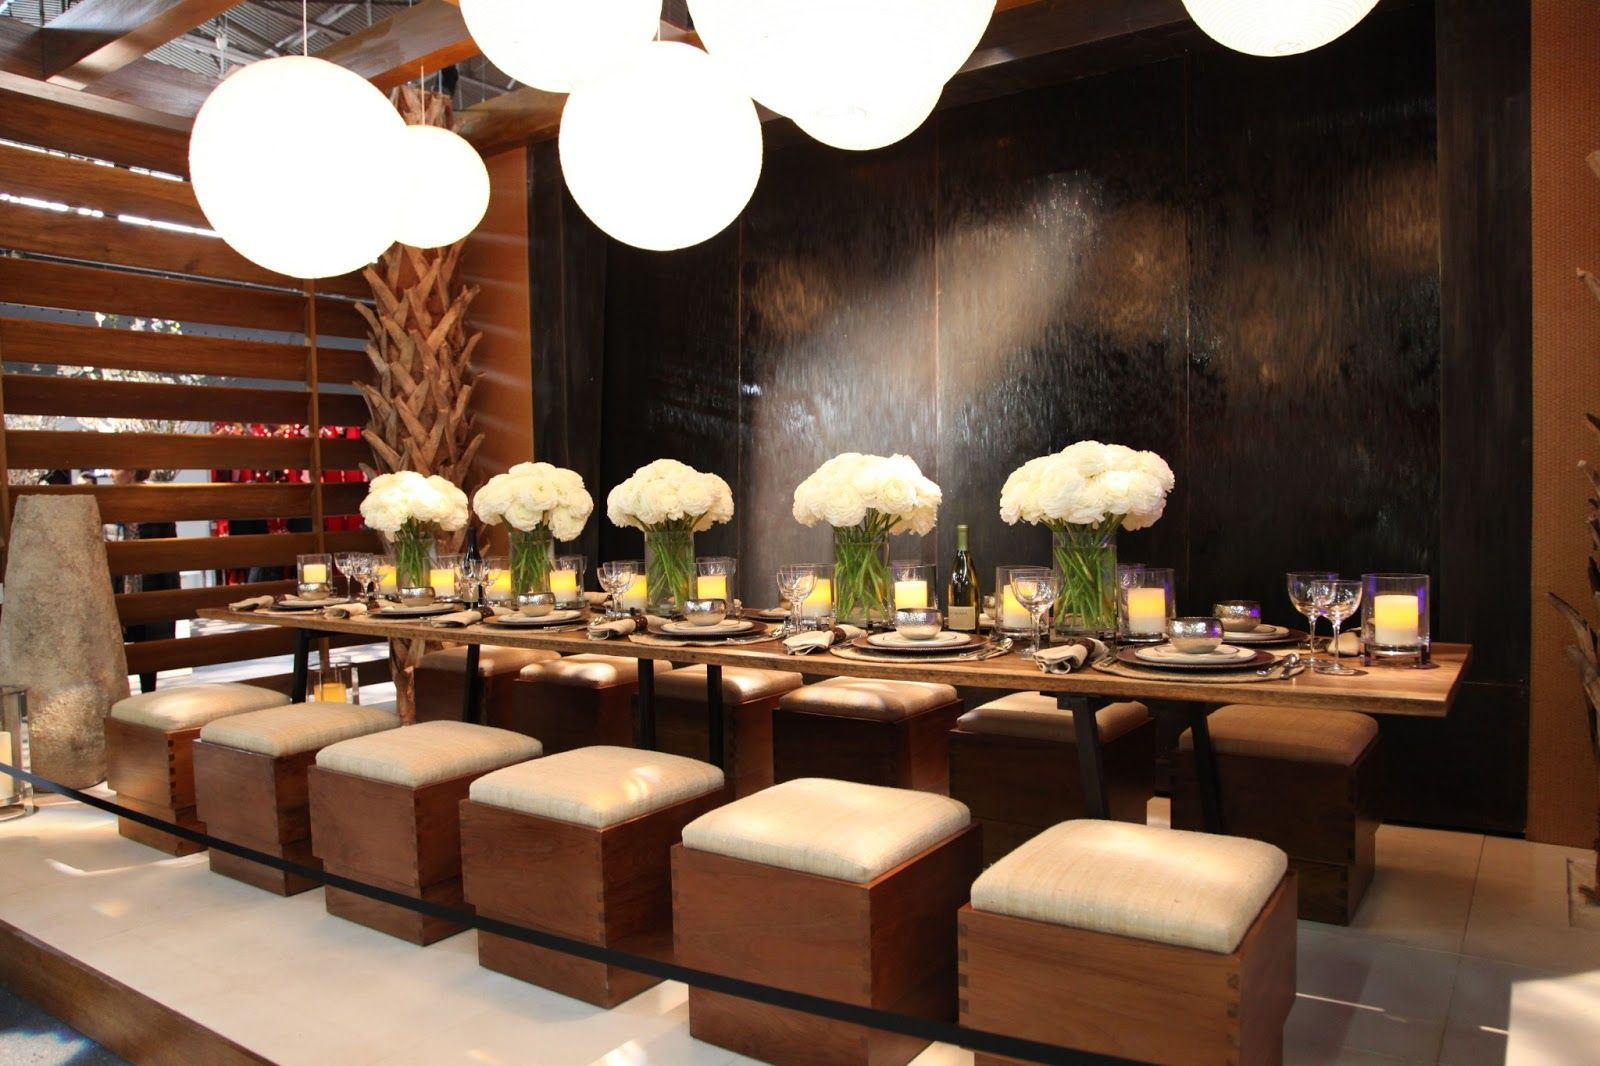 habitually chic®: diffa diningdesign 2013 that is a real